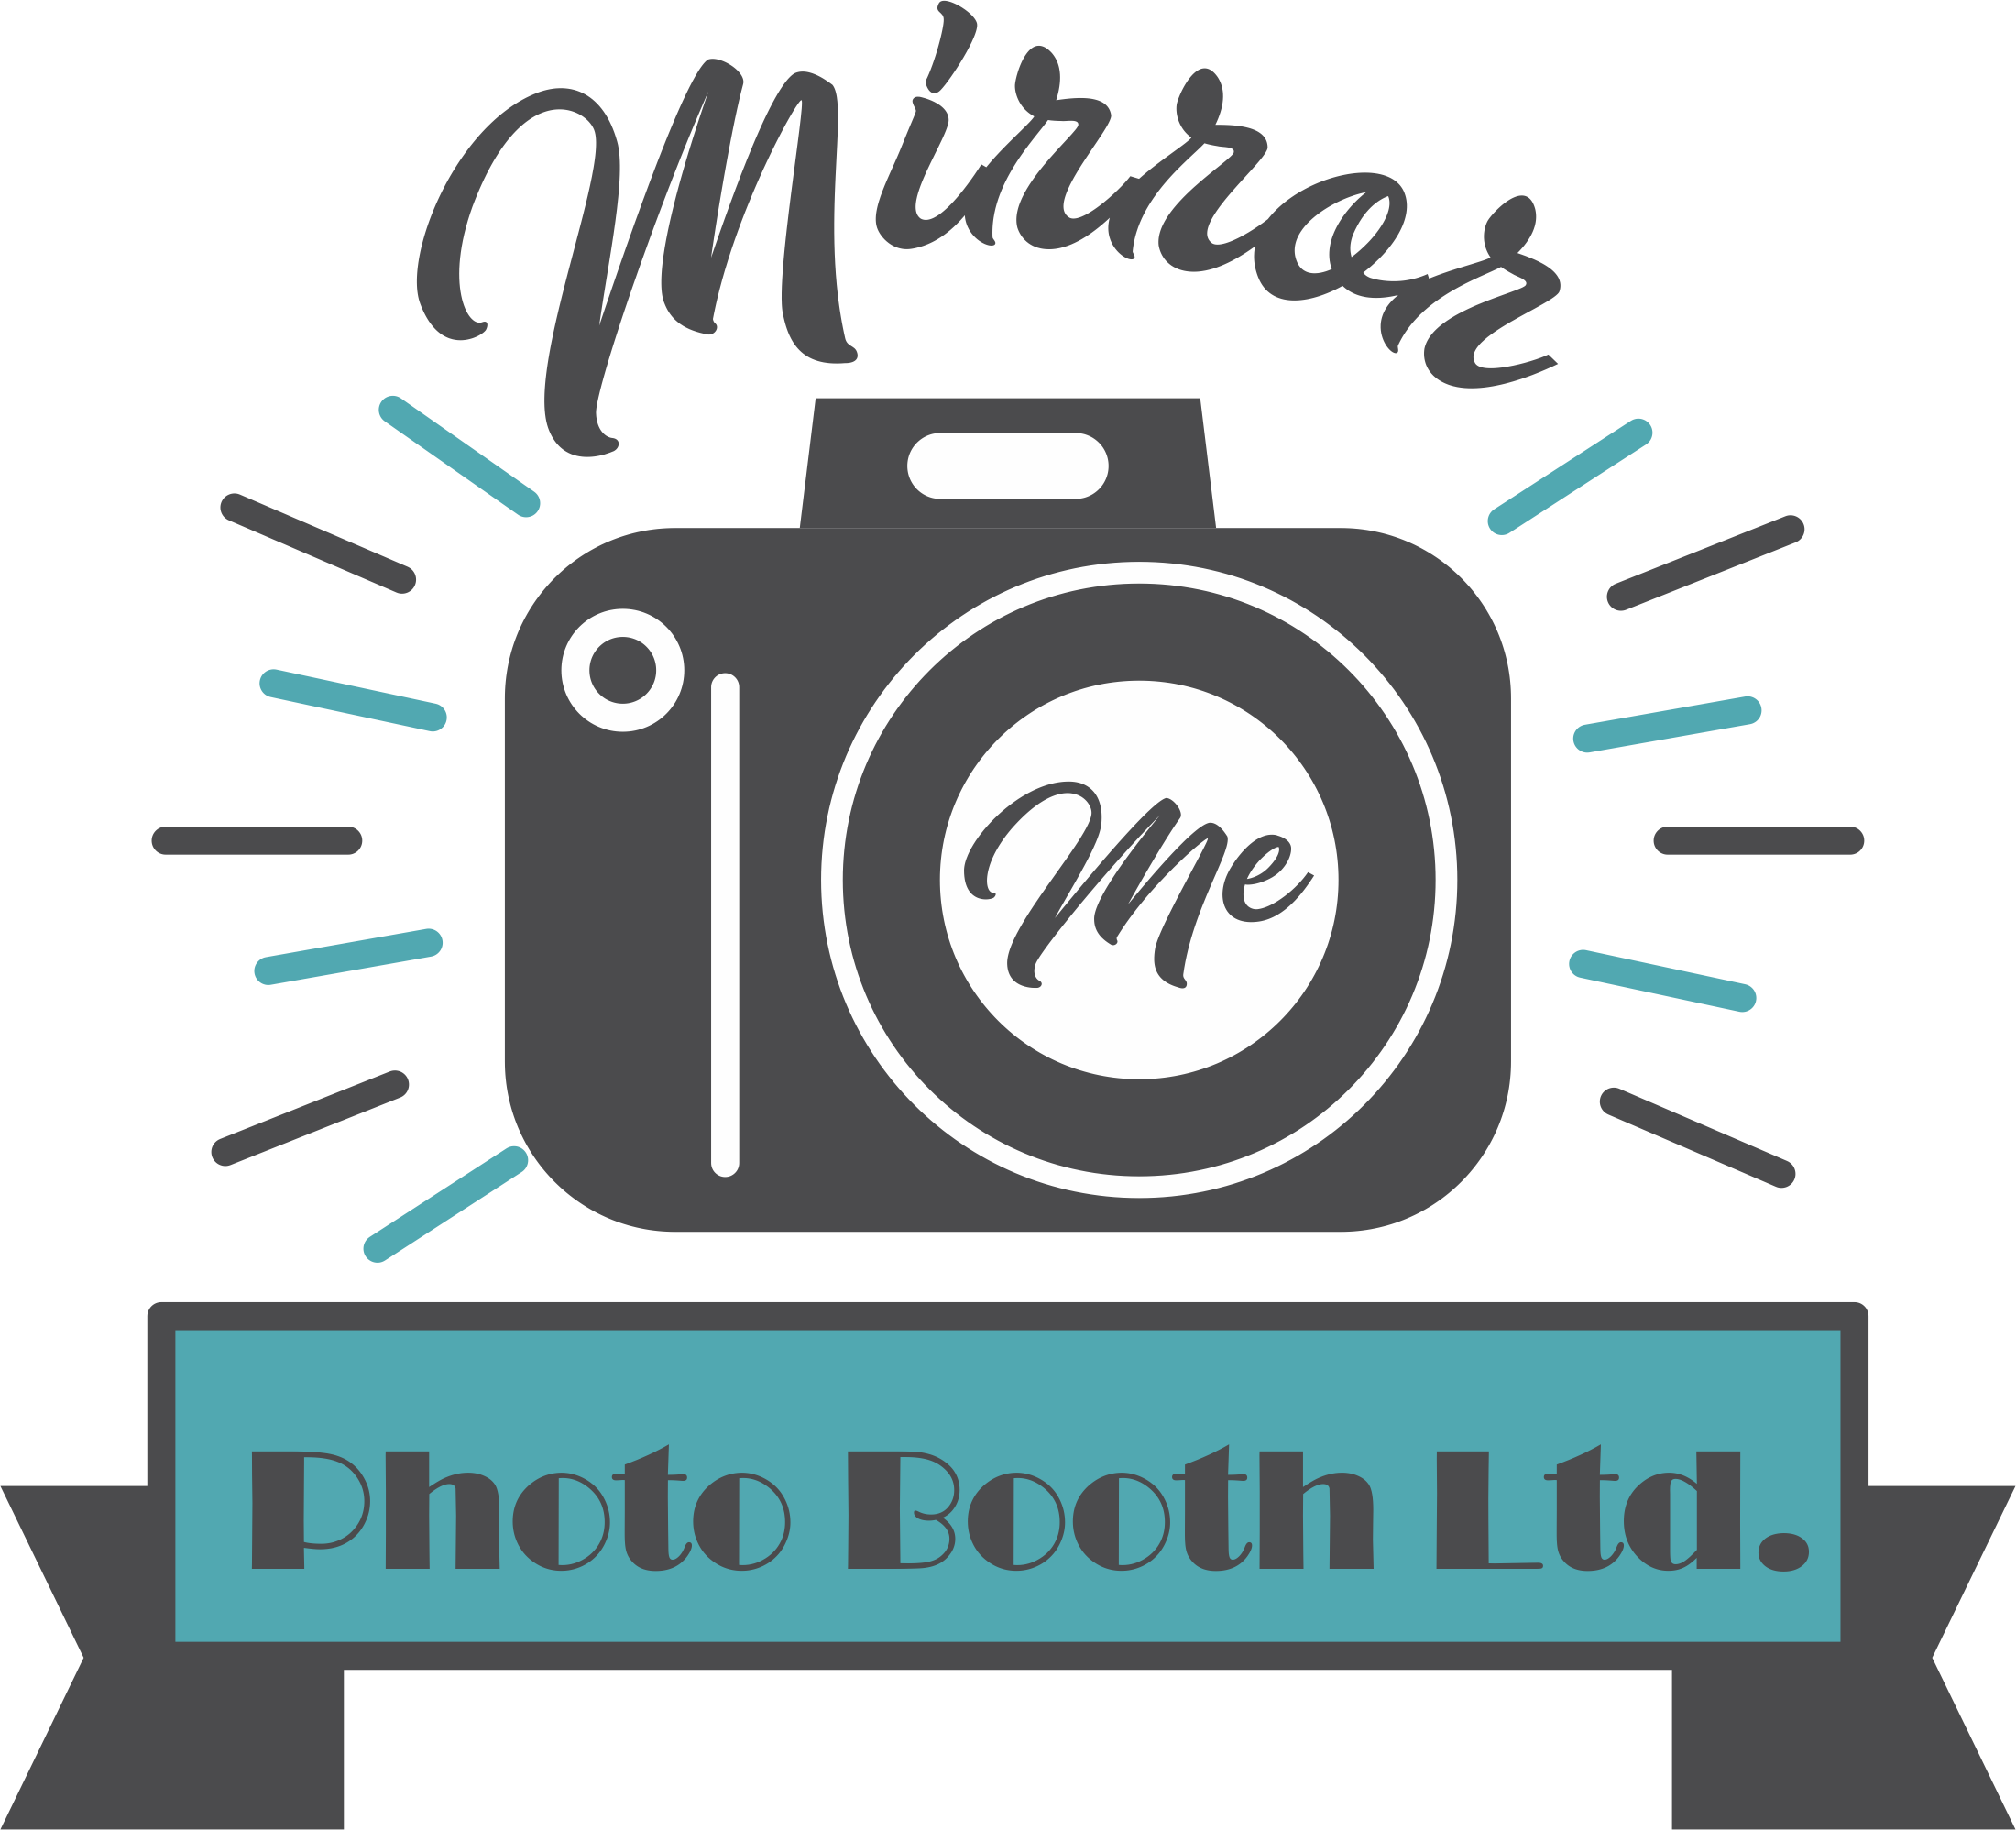 Mirror me photo booth. Photographer clipart press conference